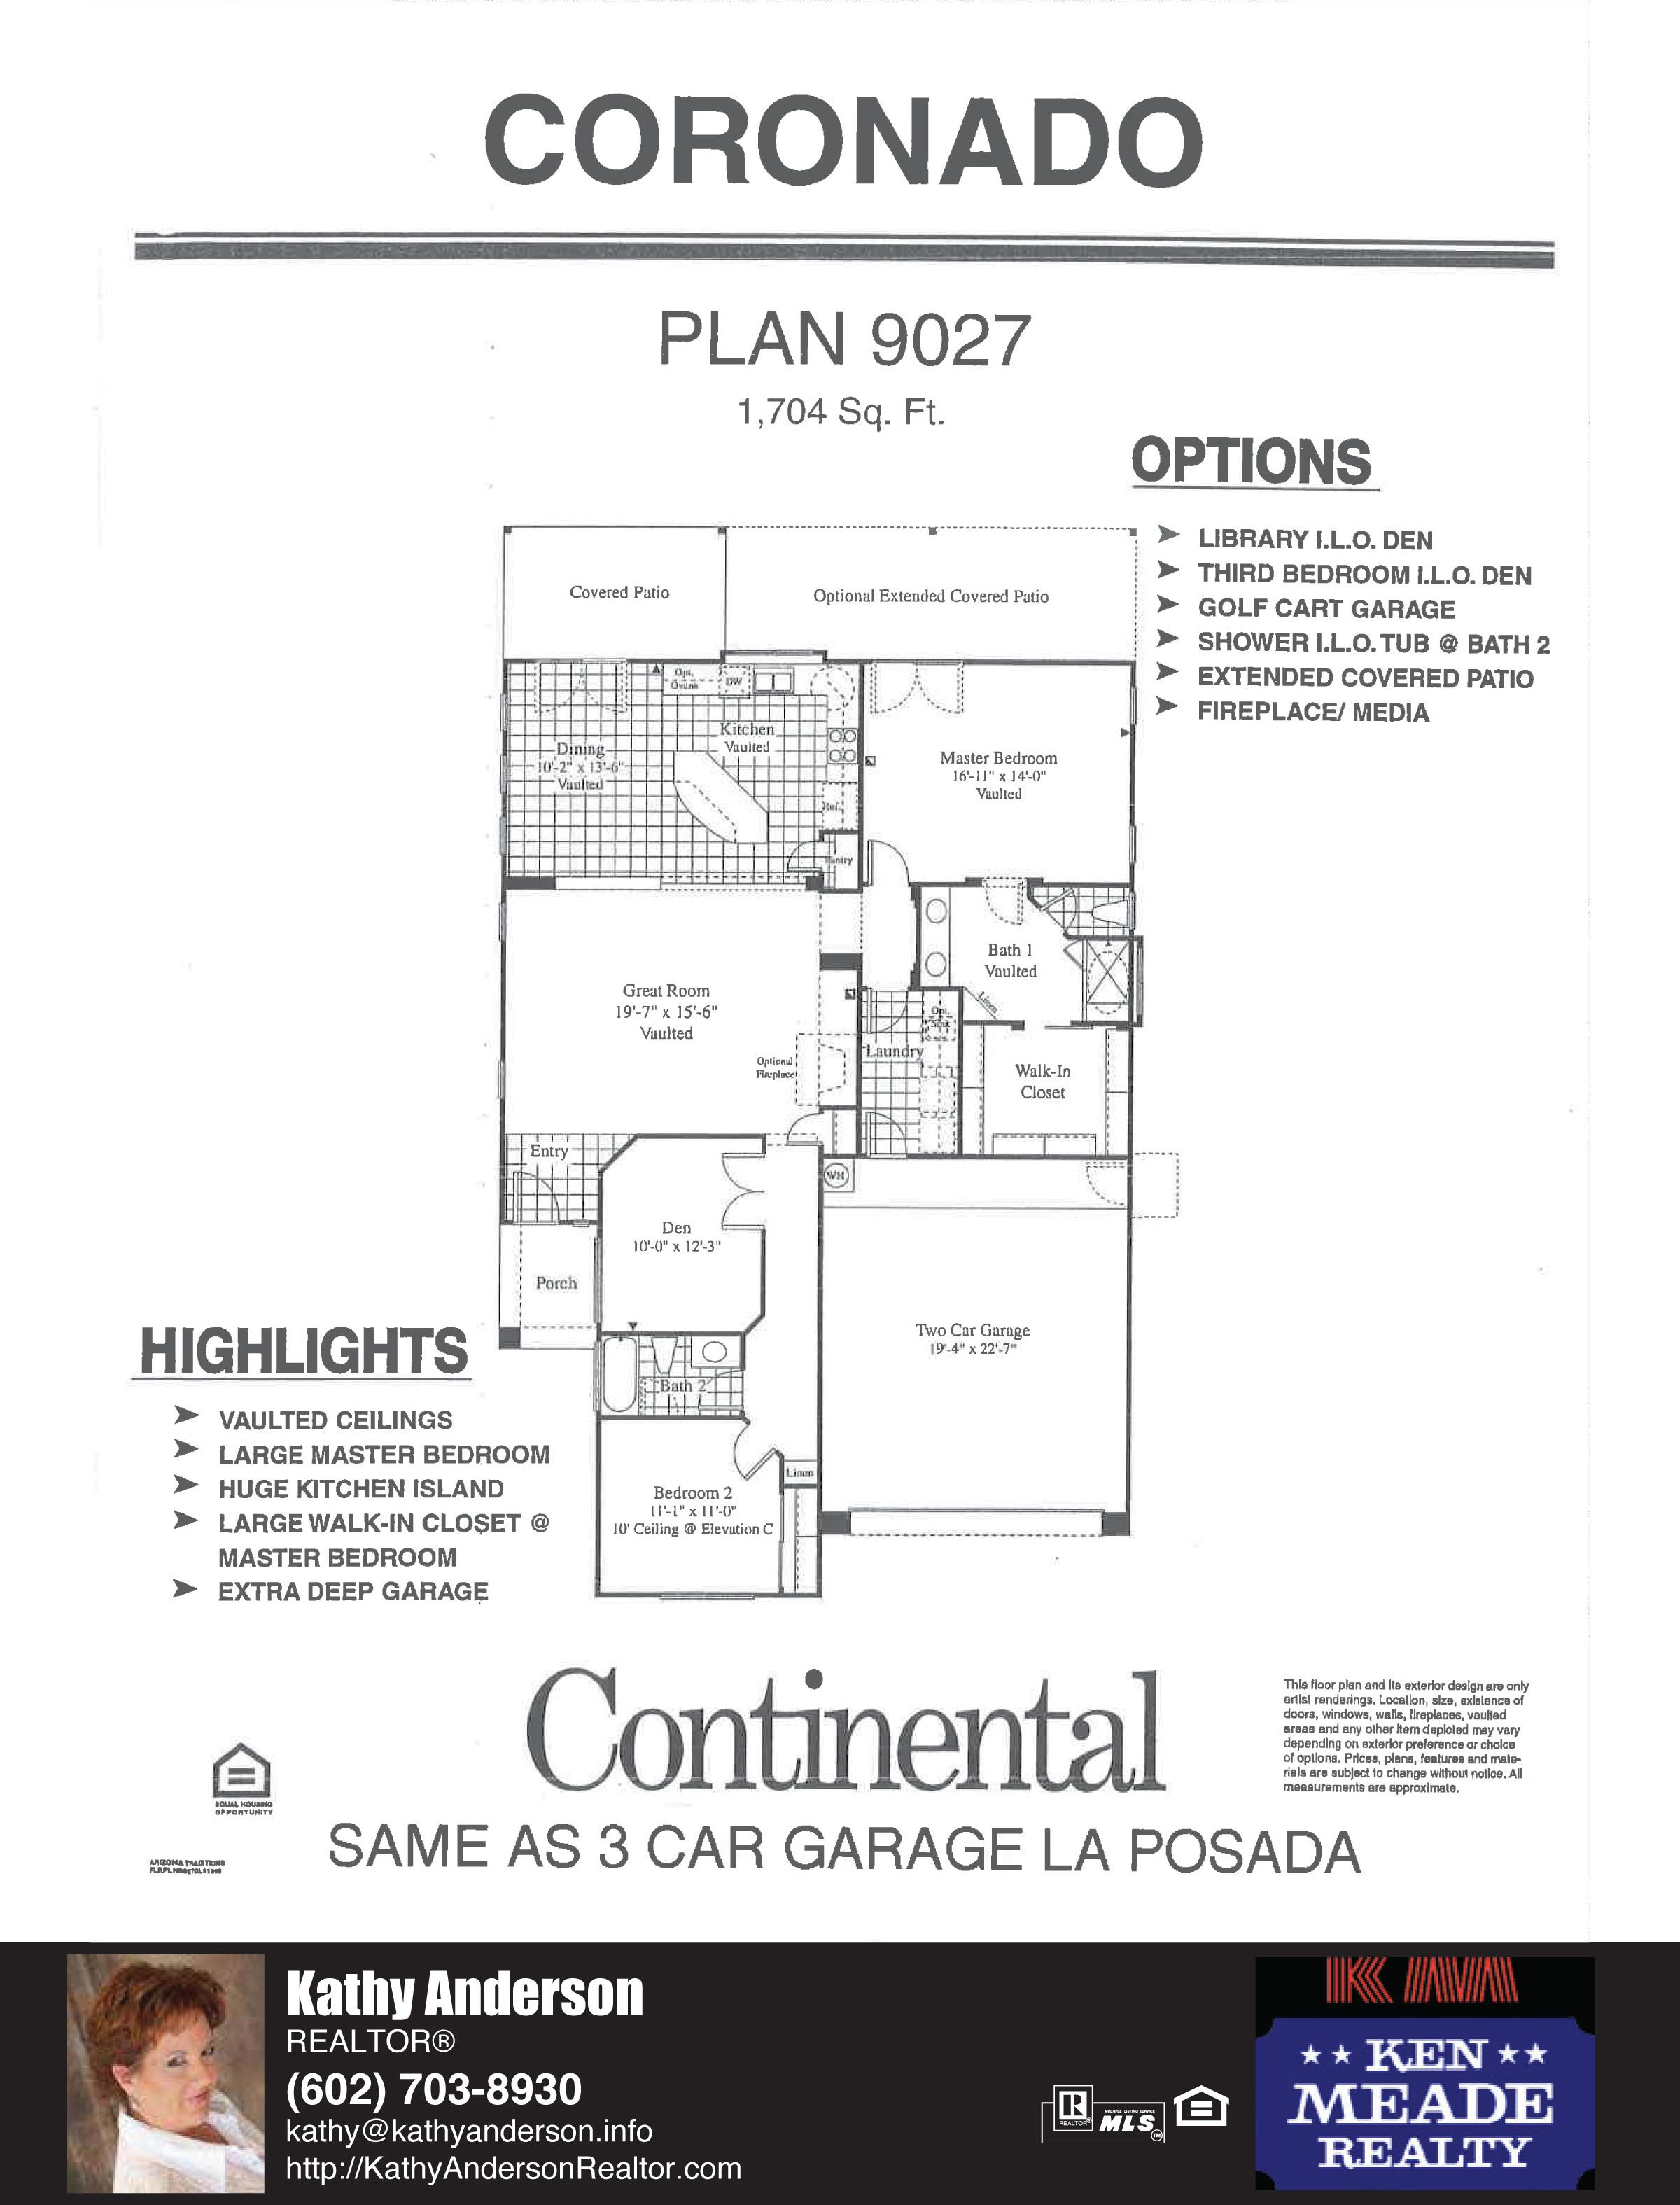 Arizona Traditions Coronado Floor Plan Model Home Plans Floorplans Models in Surprise Arizona AZ Top Ken Meade Realty Realtor agent Kathy Anderson